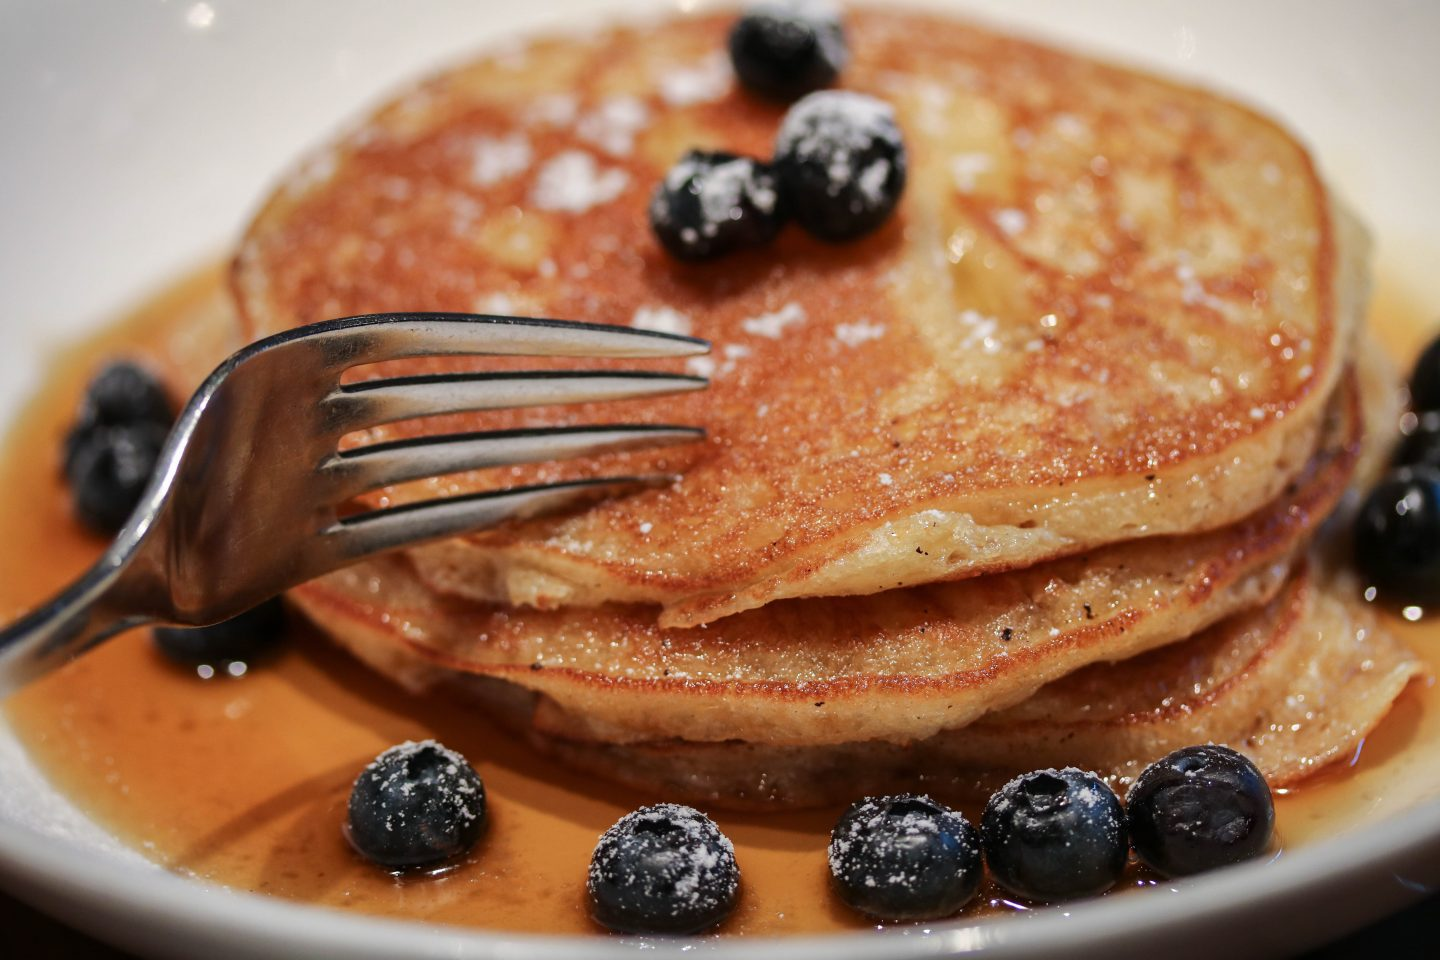 Chaas Buttermilk Pancakes with Blueberries at Chai Ki, Canary Wharf - Lifestyle Enthusiast Blog Recovery Brunch Review